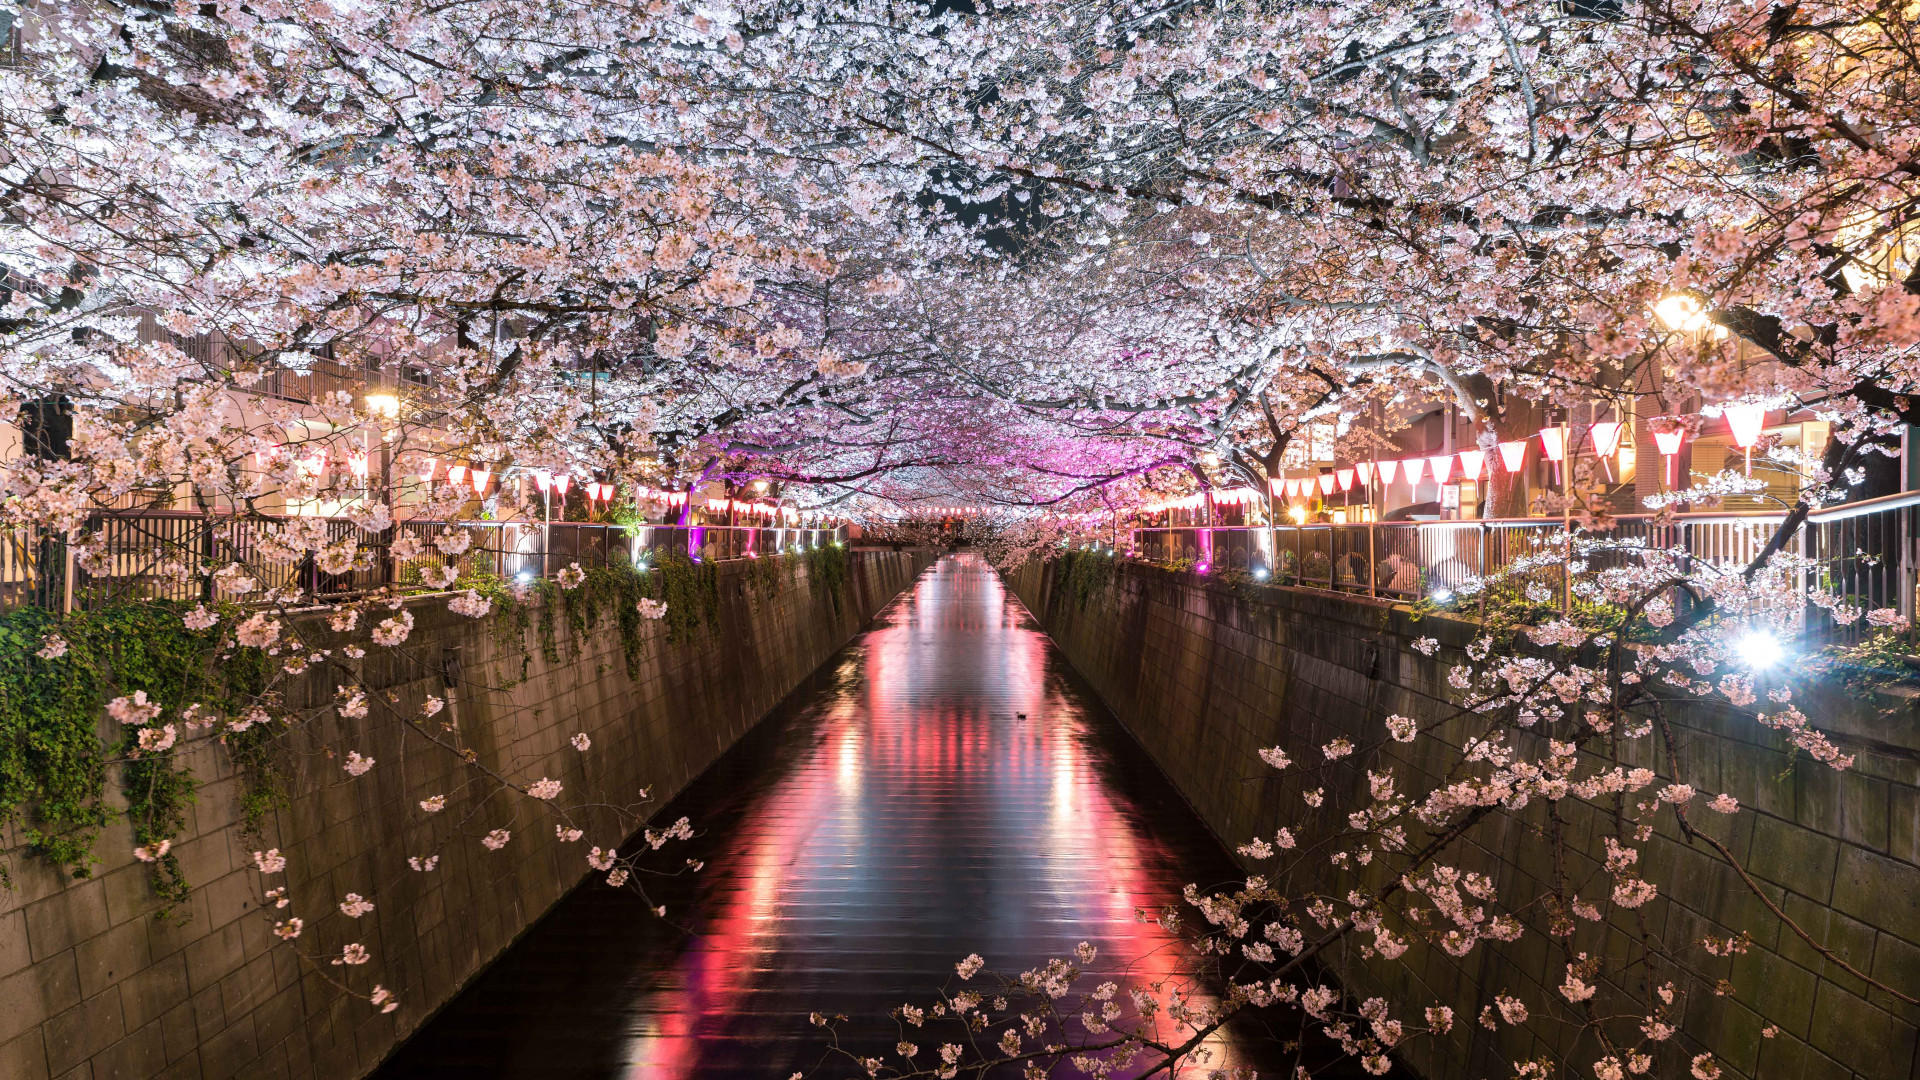 Japan Rugby World Cup 2019: The Meguro Canal at night in Tokyo, Japan